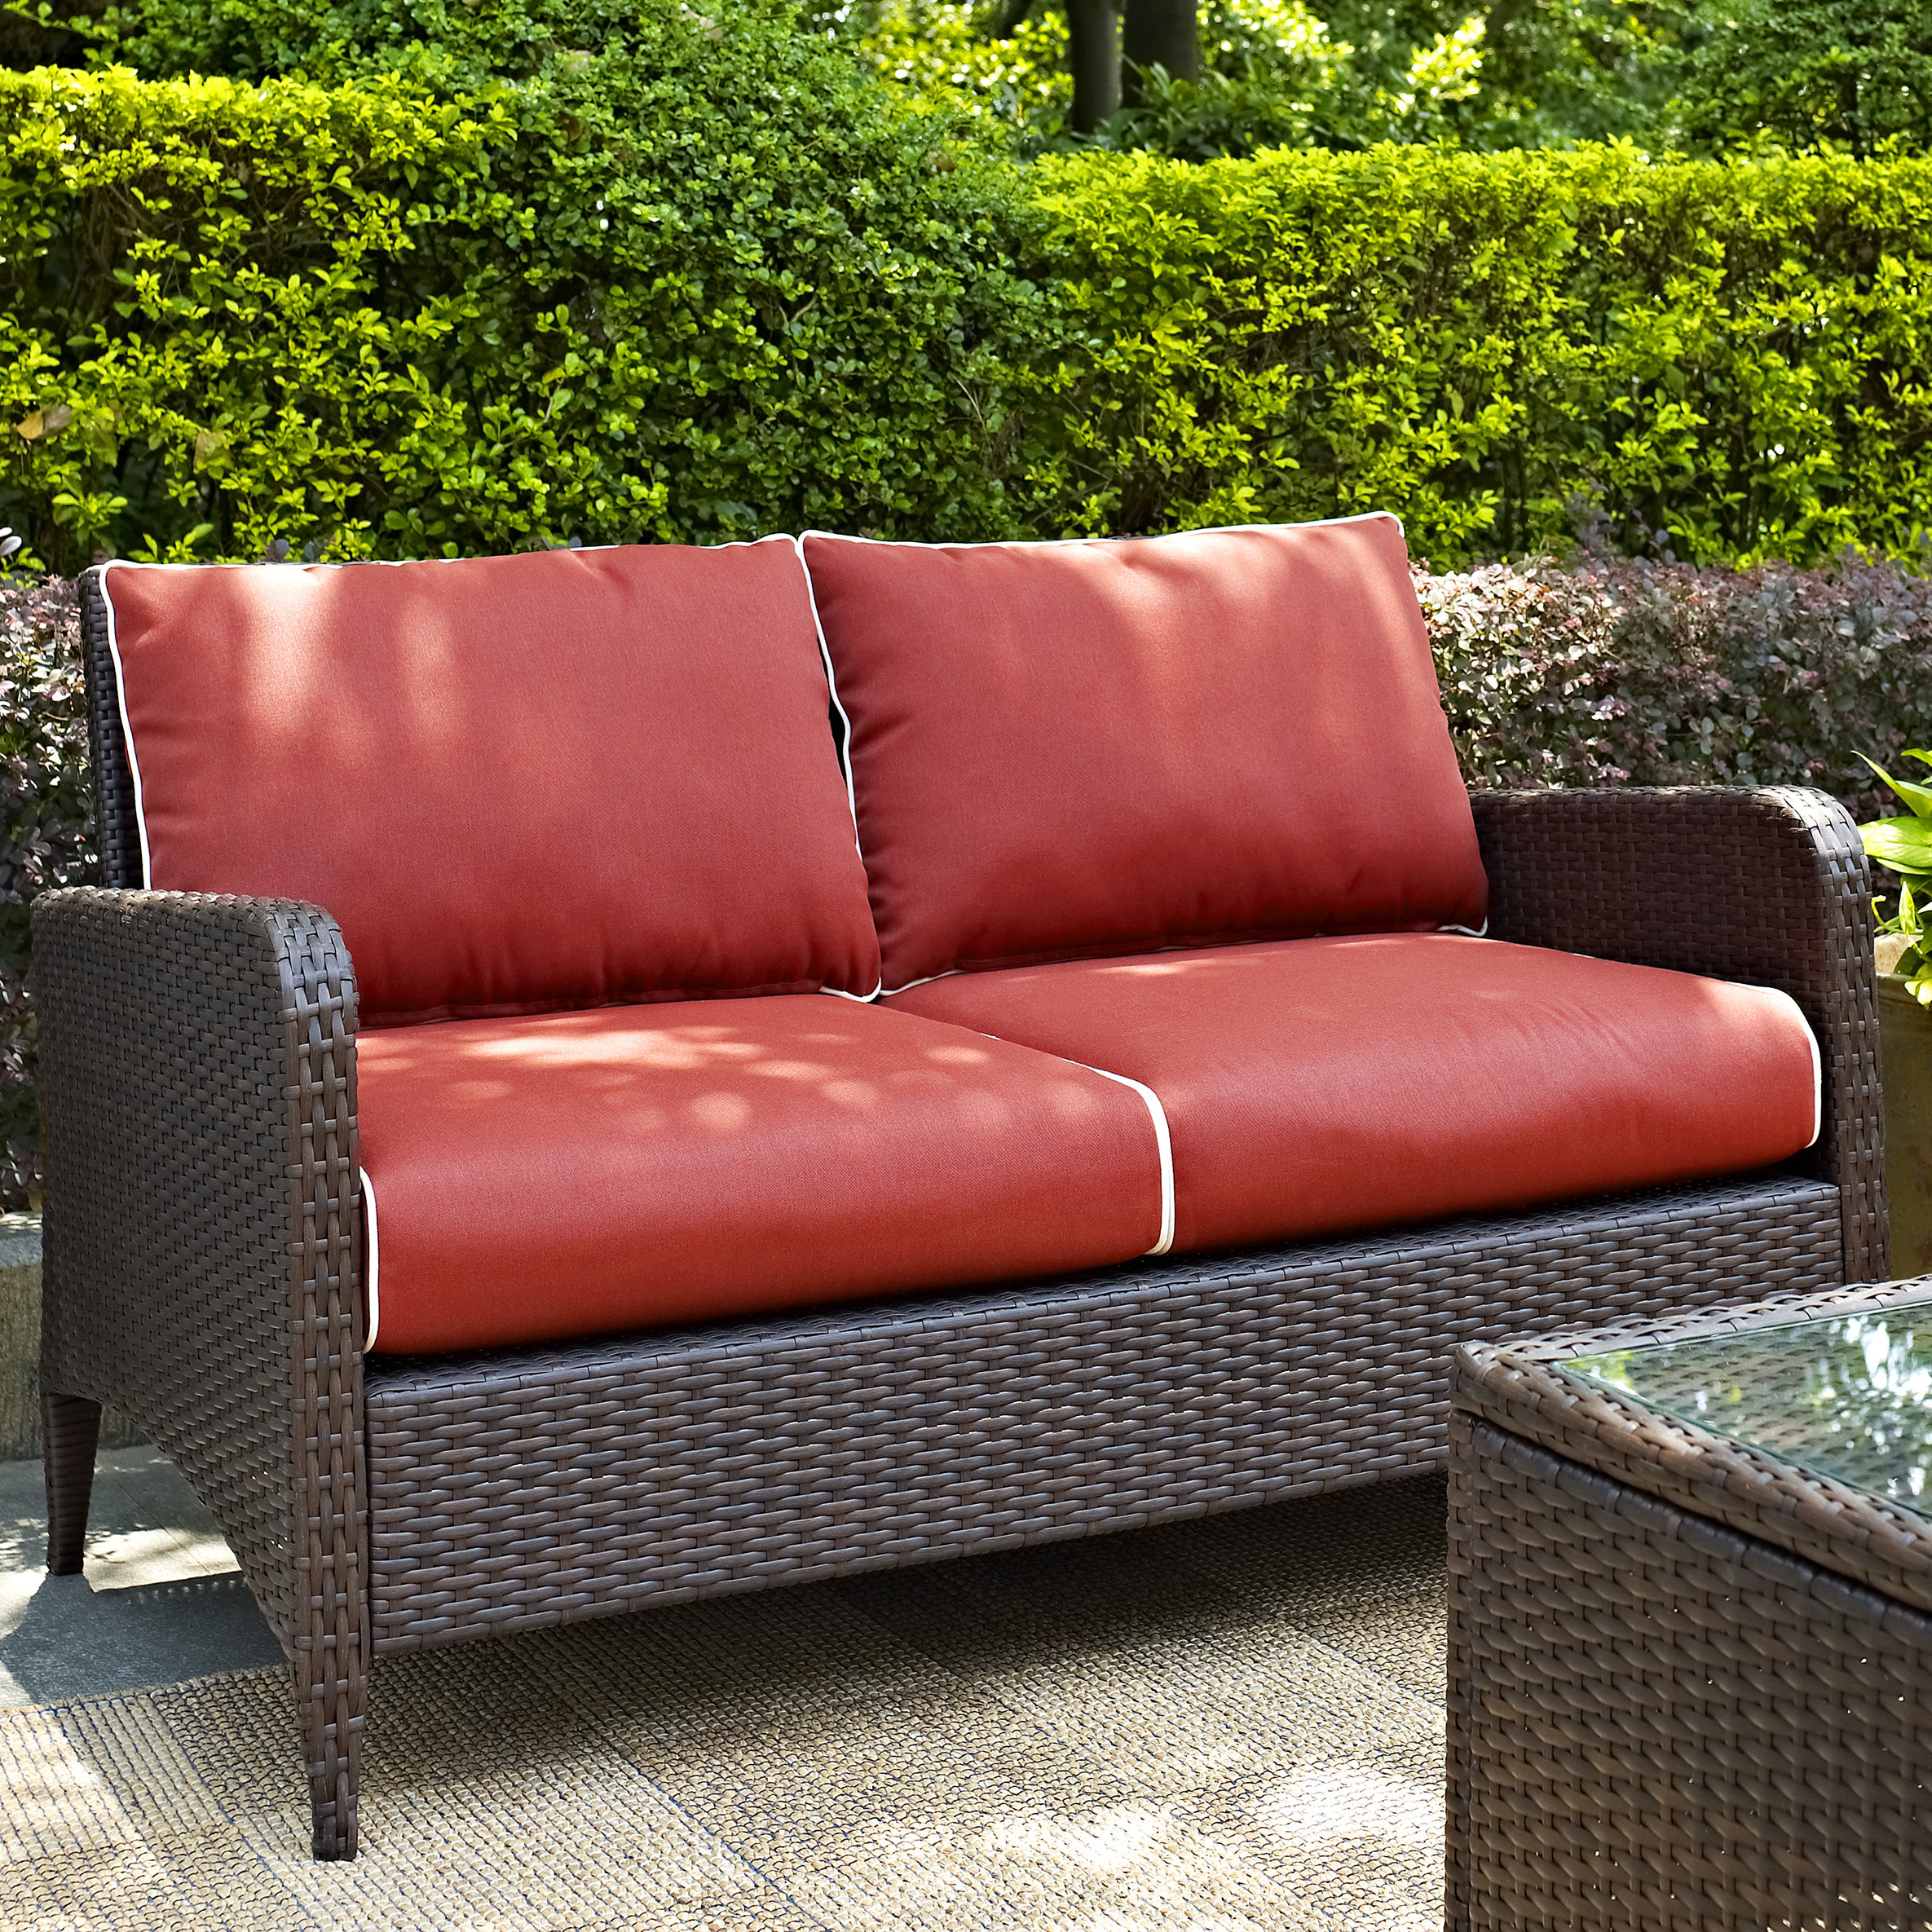 Clifford Loveseats With Cushion Pertaining To Widely Used Mosca Patio Loveseat With Cushions (View 4 of 20)